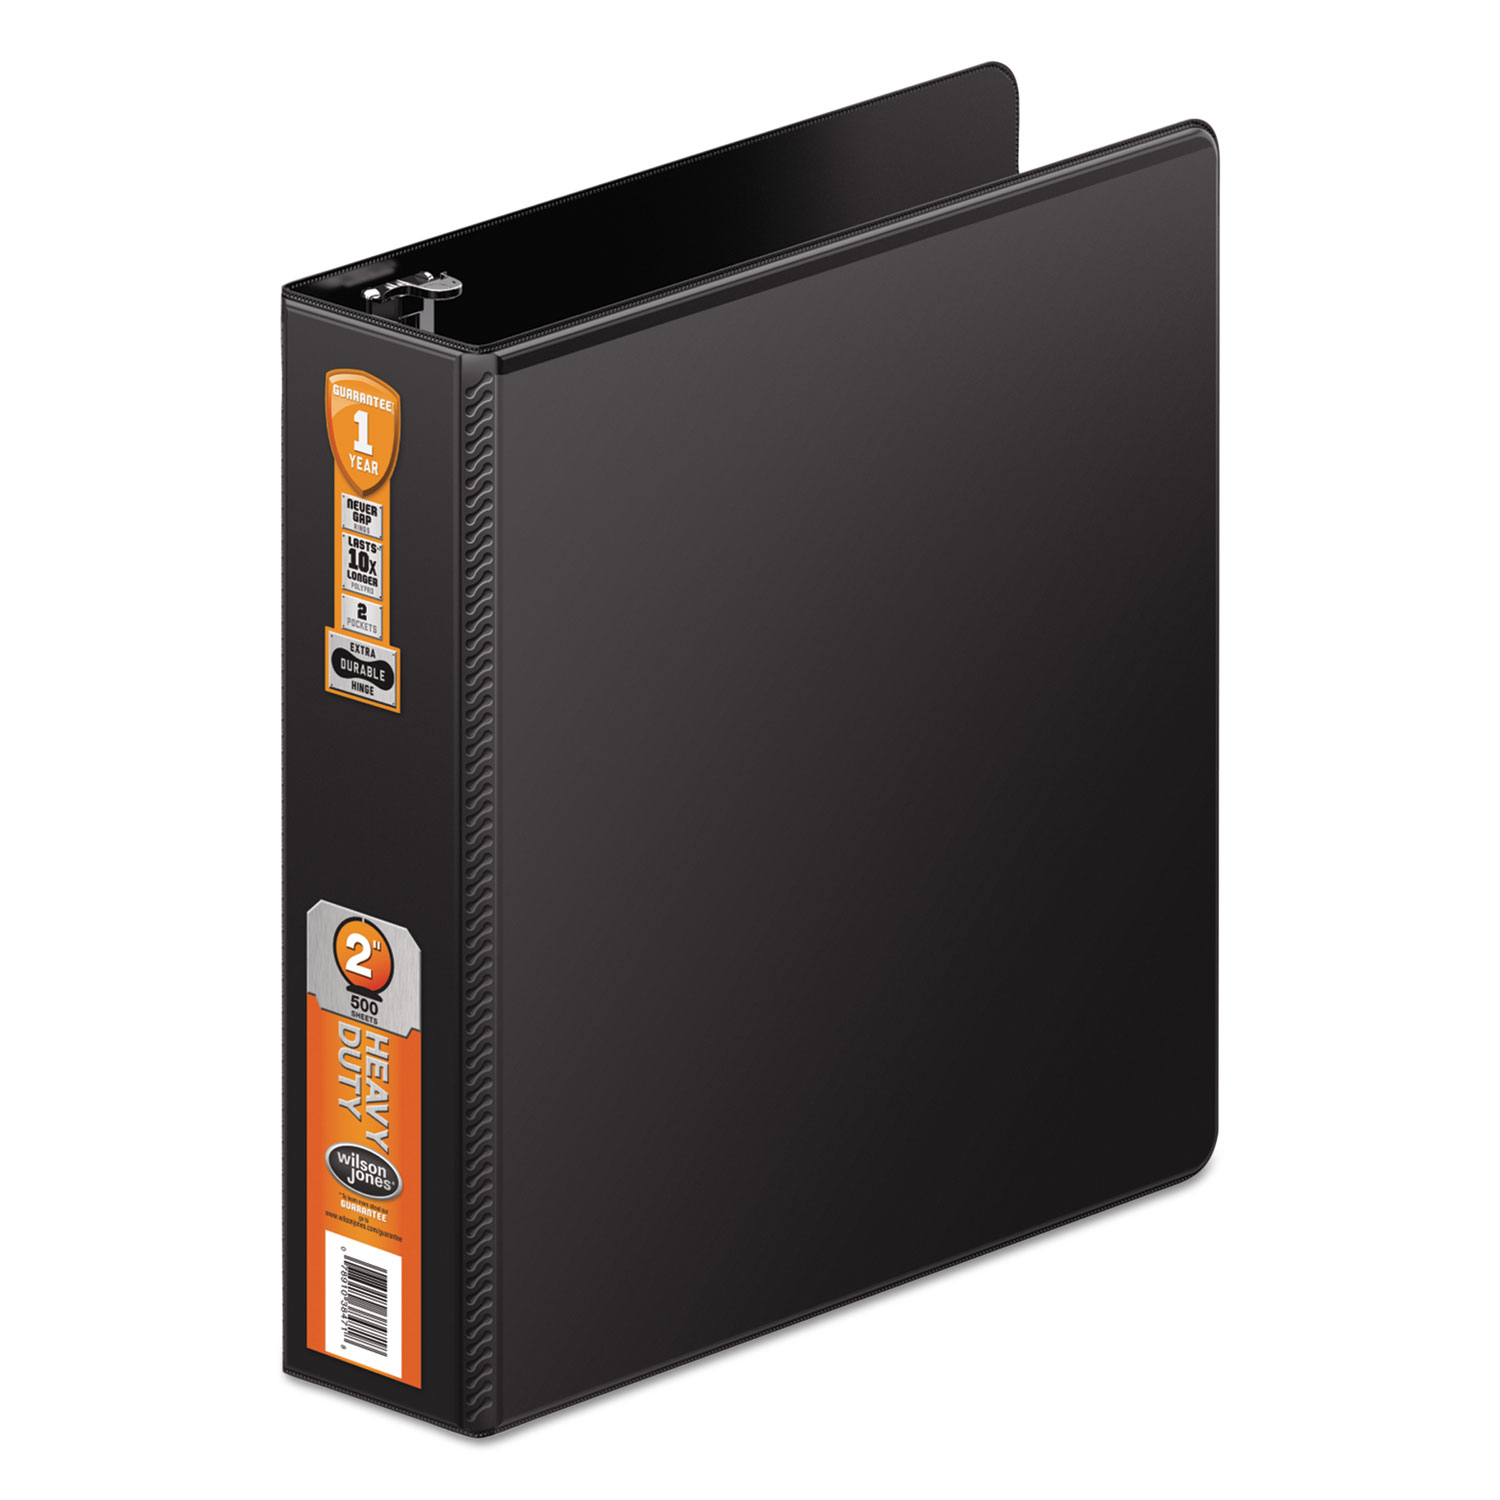 Heavy-Duty D-Ring Binder W/Extra-Durable Hinge By Wilson